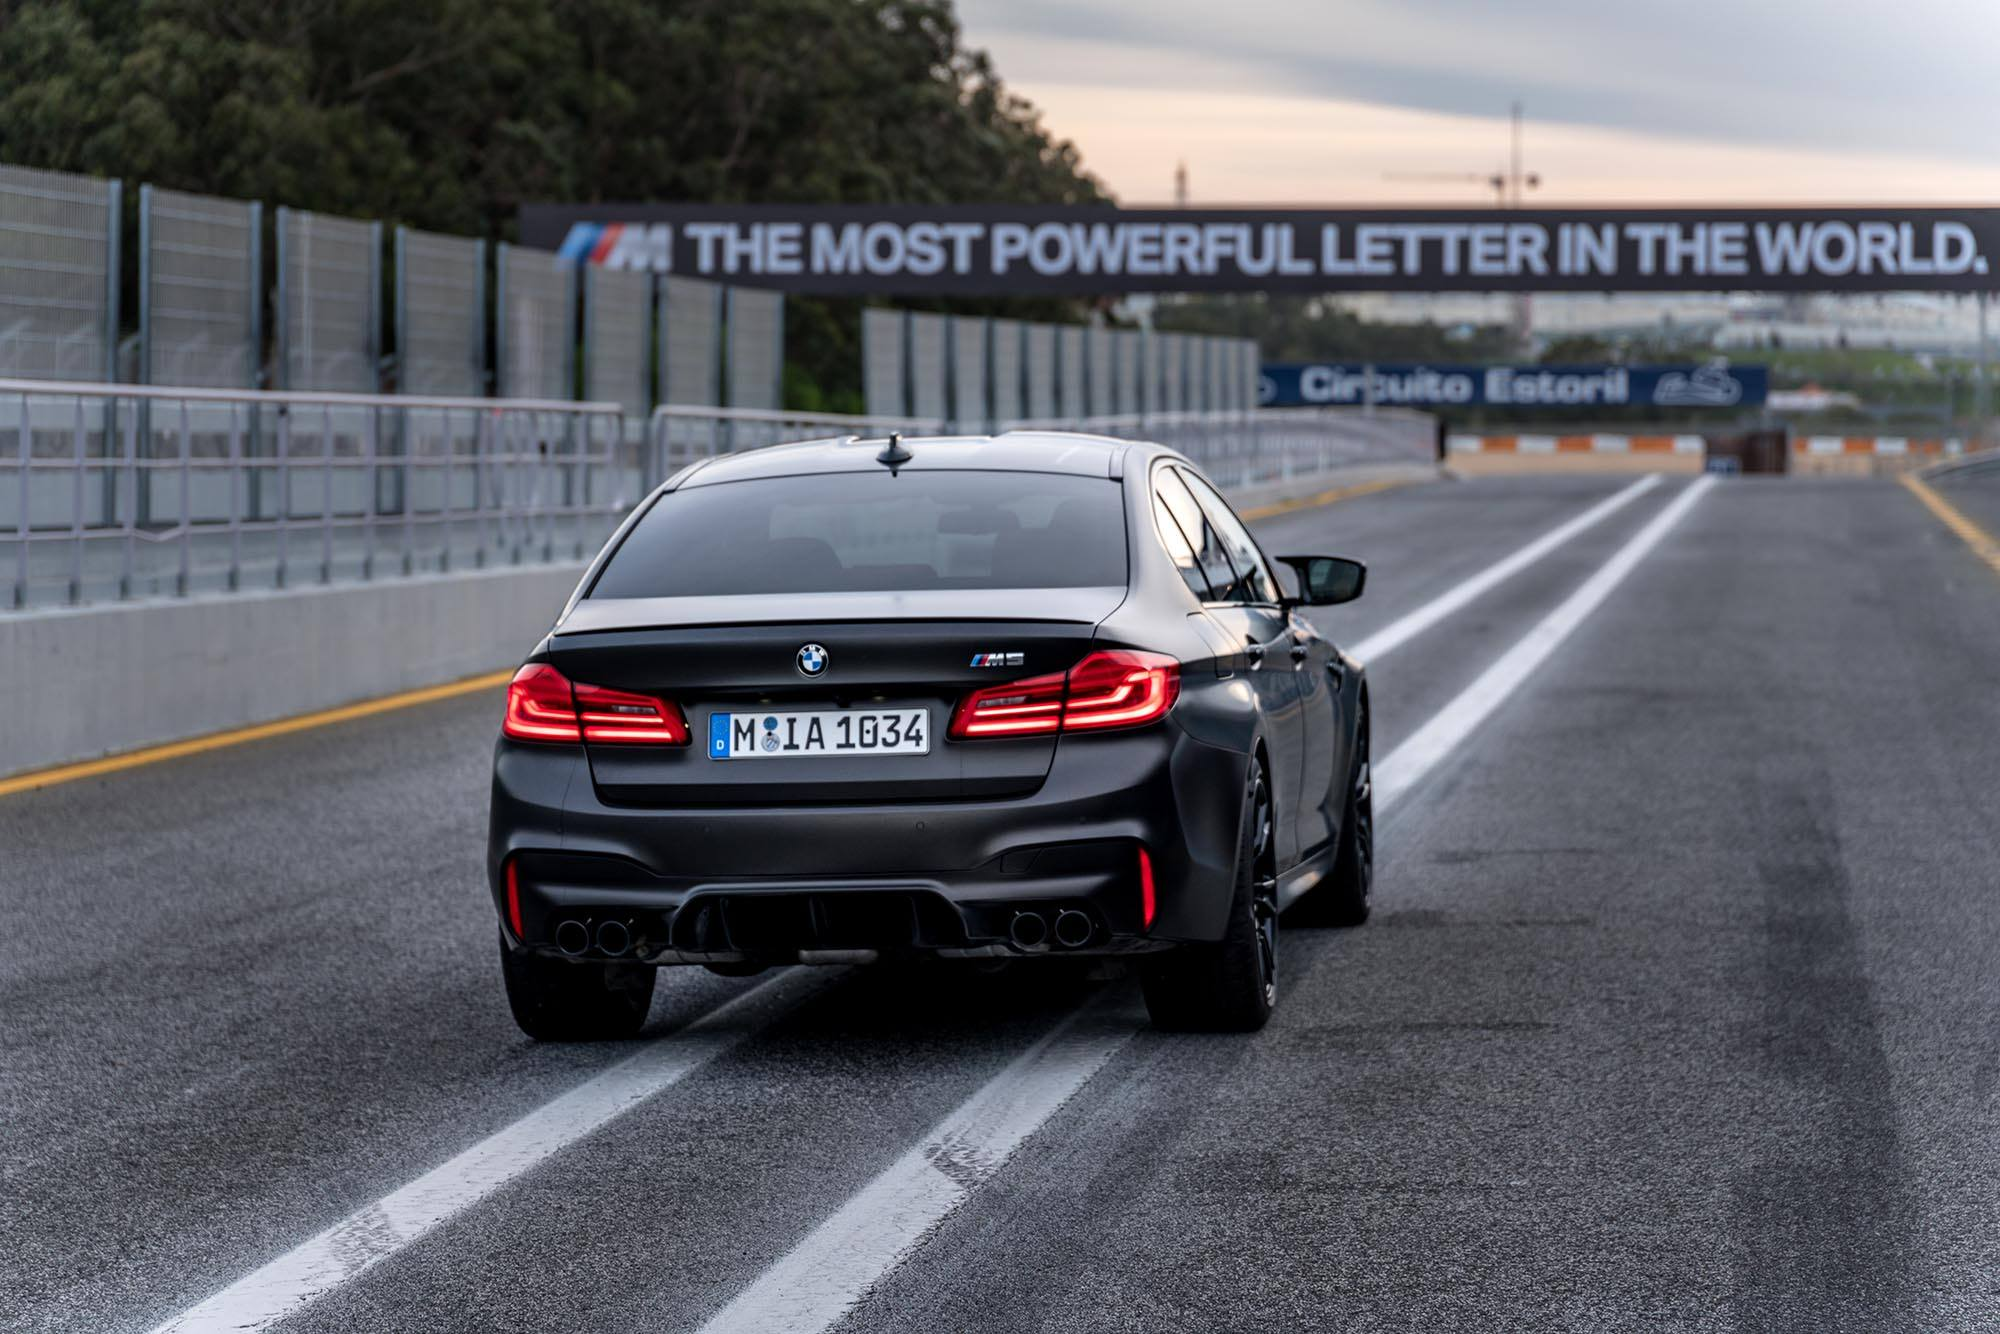 One Of Them Is A BMW F90 M5 In Frozen Black Color That Has Enjoyed Many Years Great Popularity With Individualists Who Do Not Want To Attract